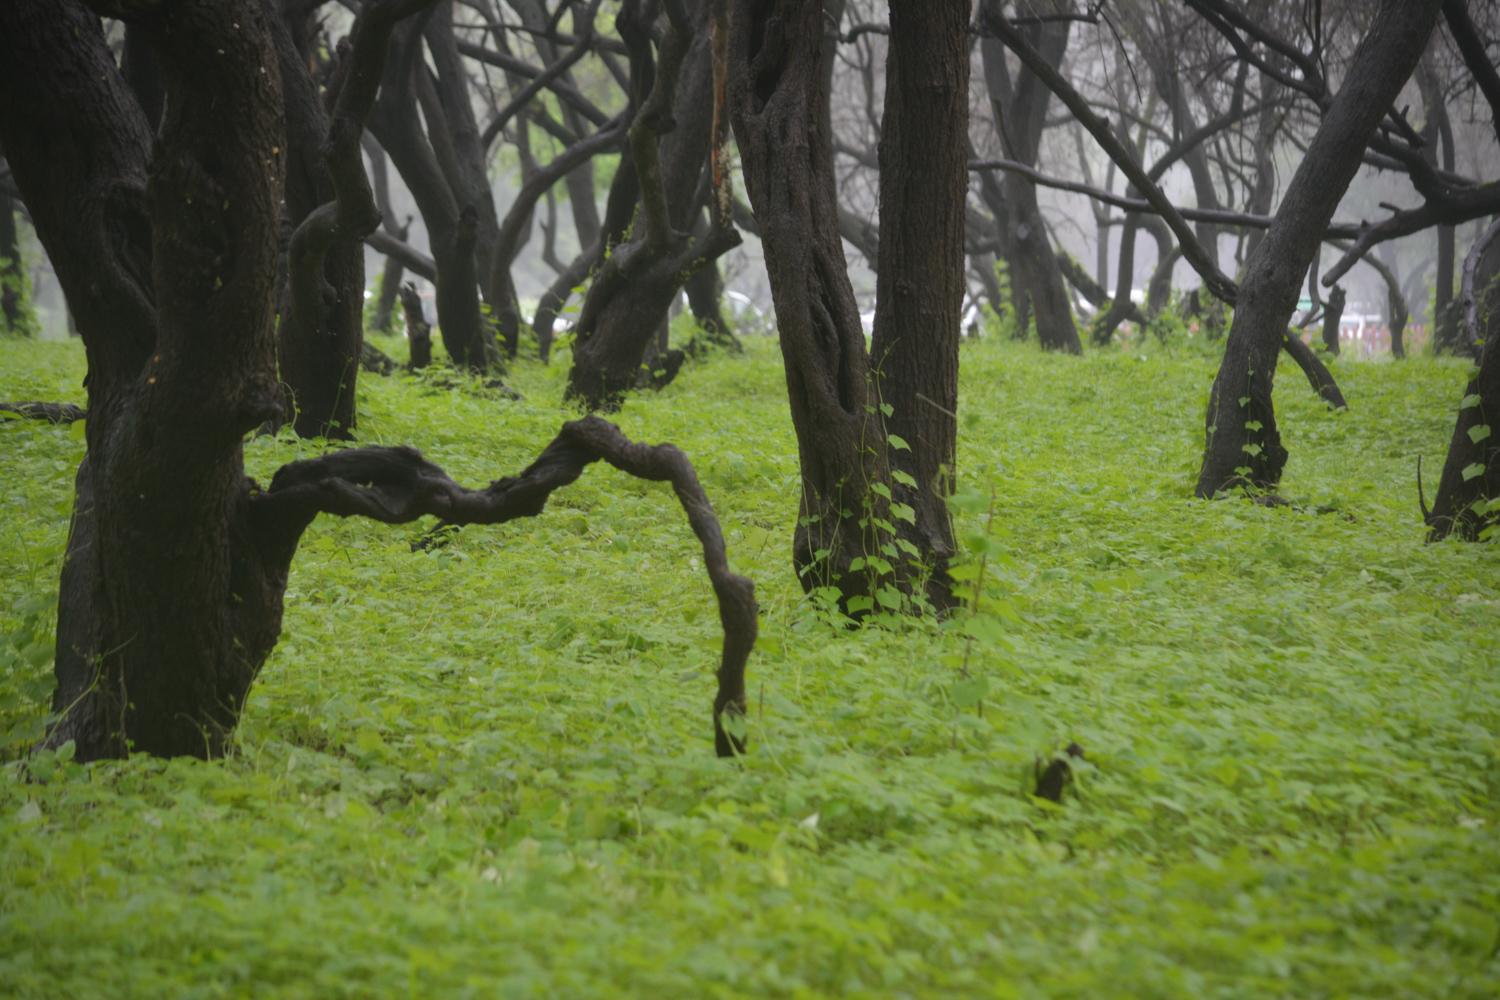 Is there a lucky clover among these crawling vines?